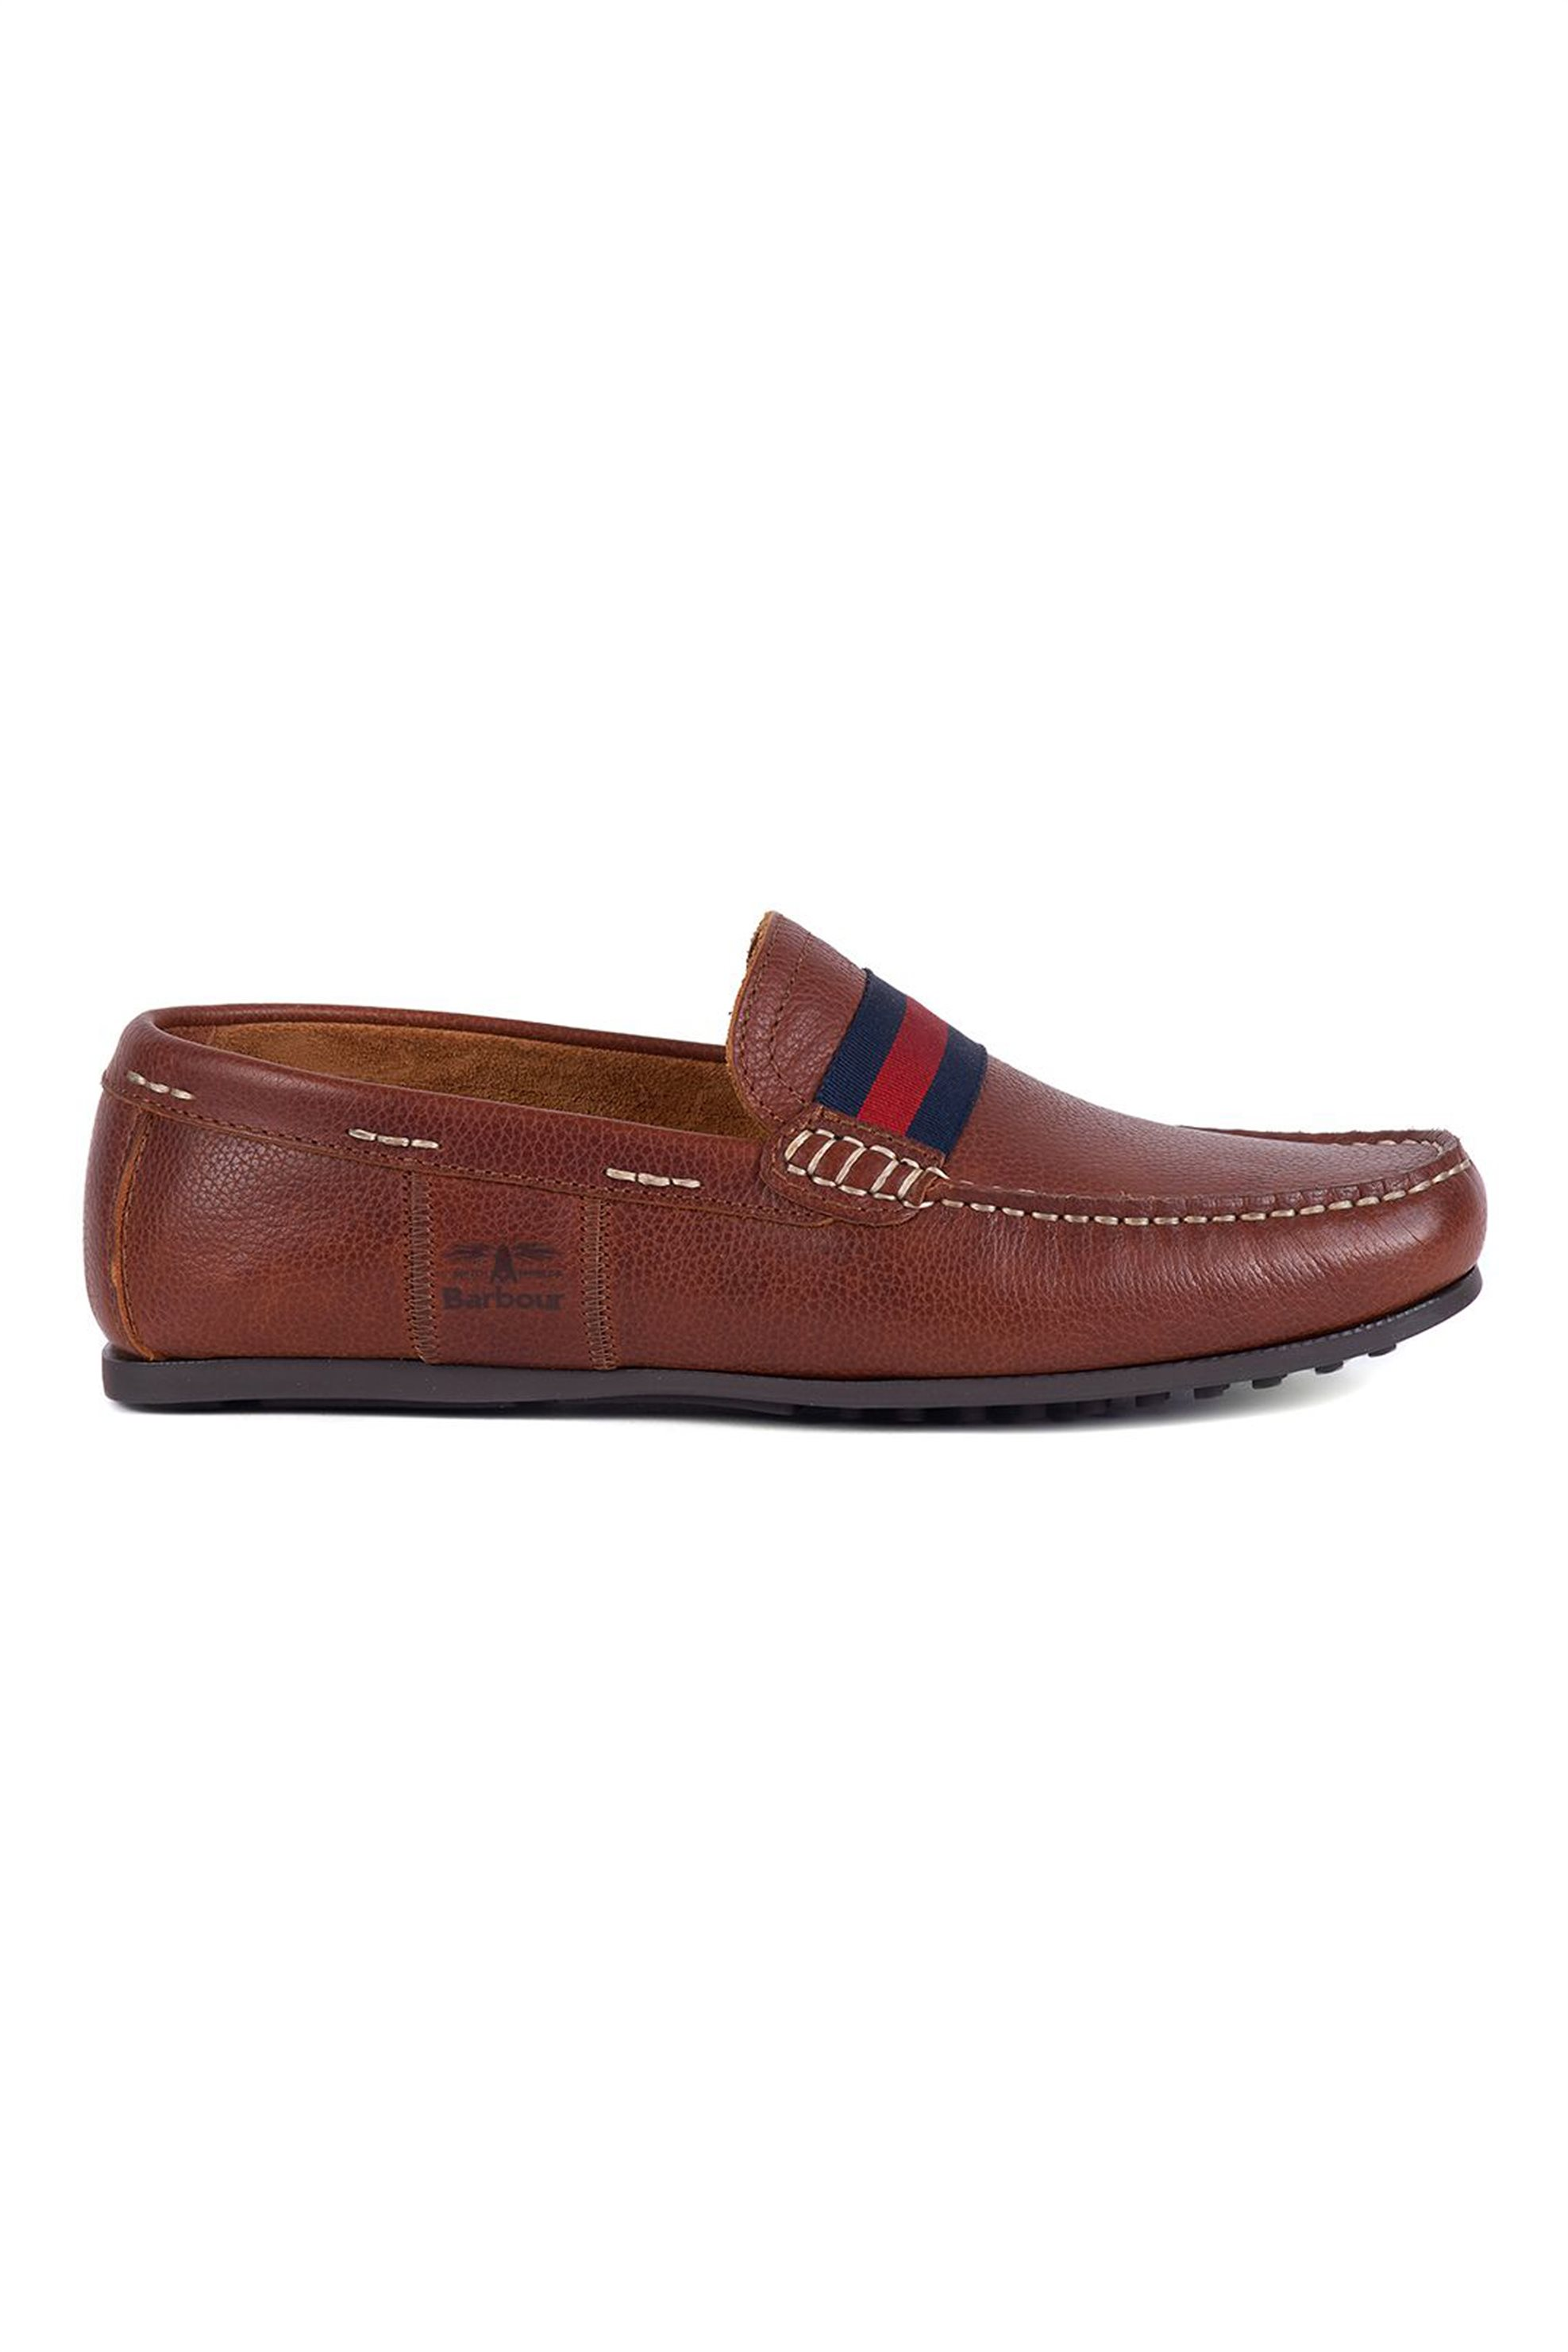 """Barbour ανδρικά suede loafers """"Mansell"""" – MFO0472 – Ταμπά"""